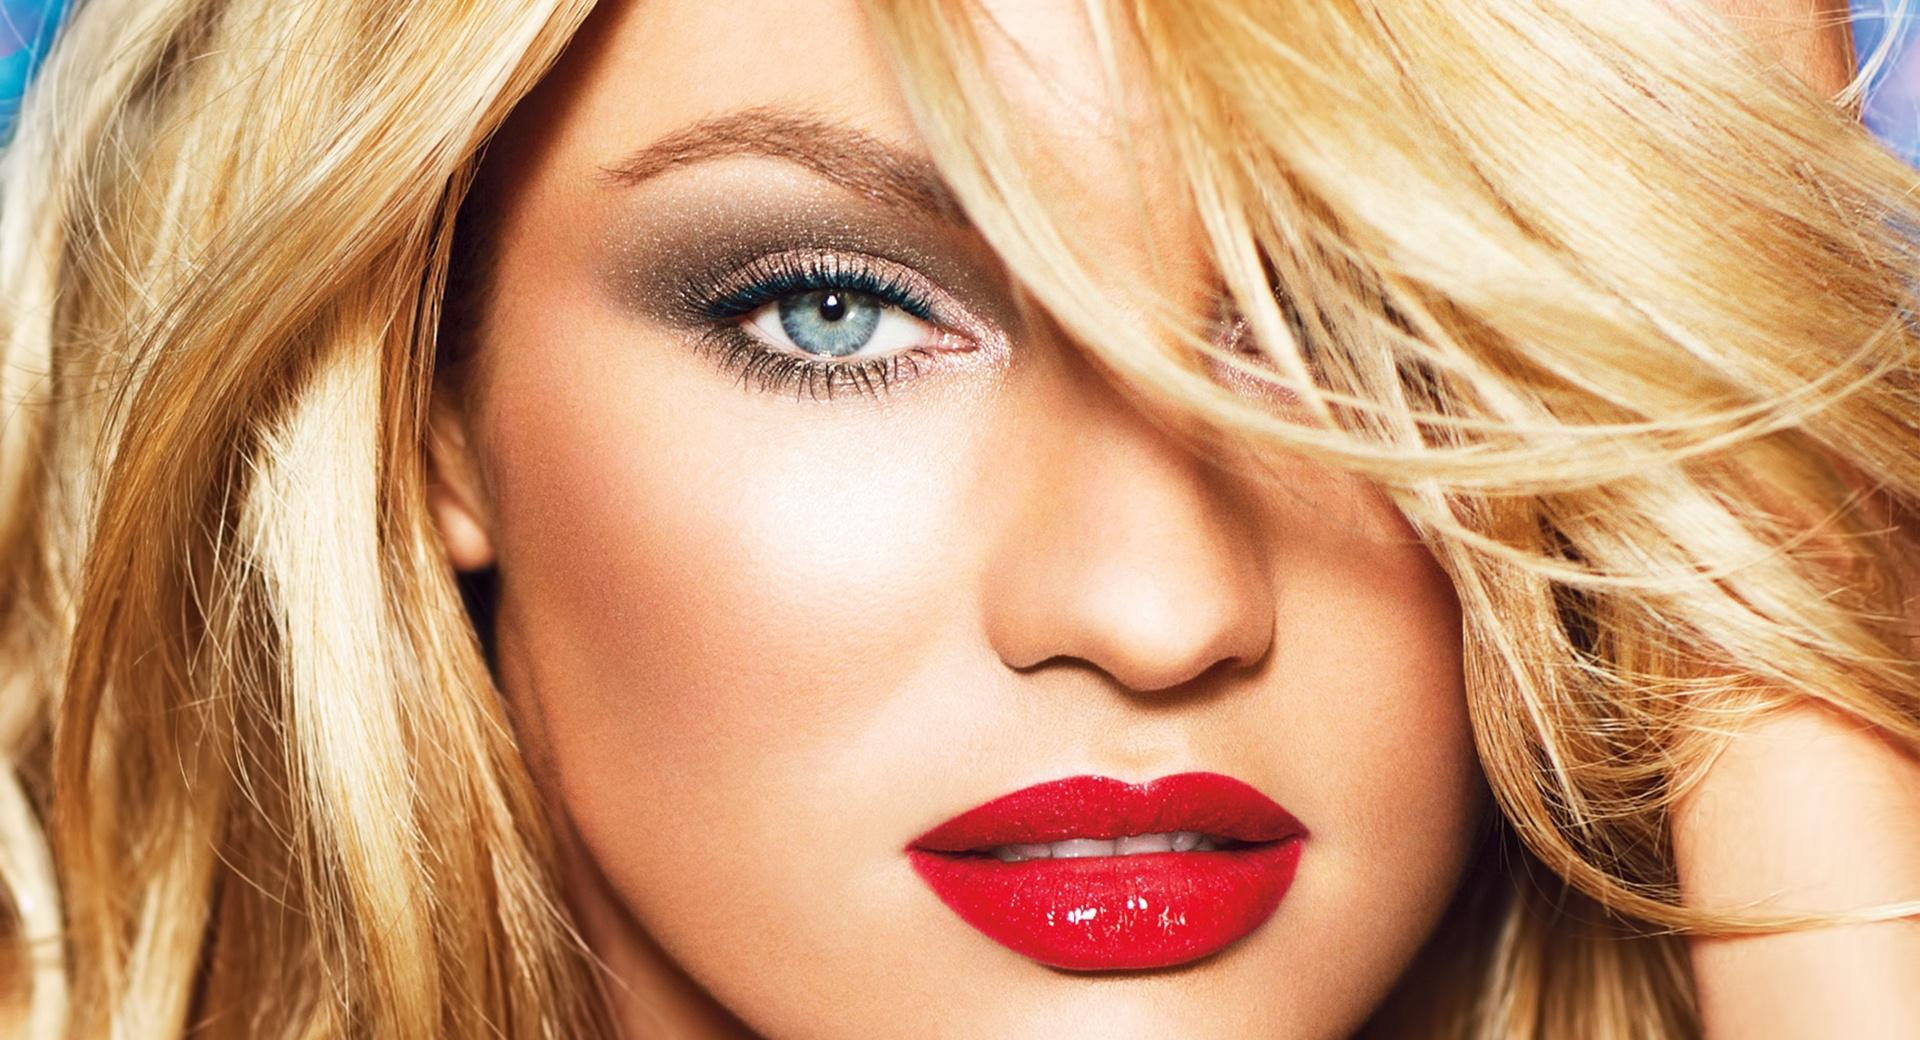 Candice Swanepoel Red Sexy Lips wallpapers HD quality